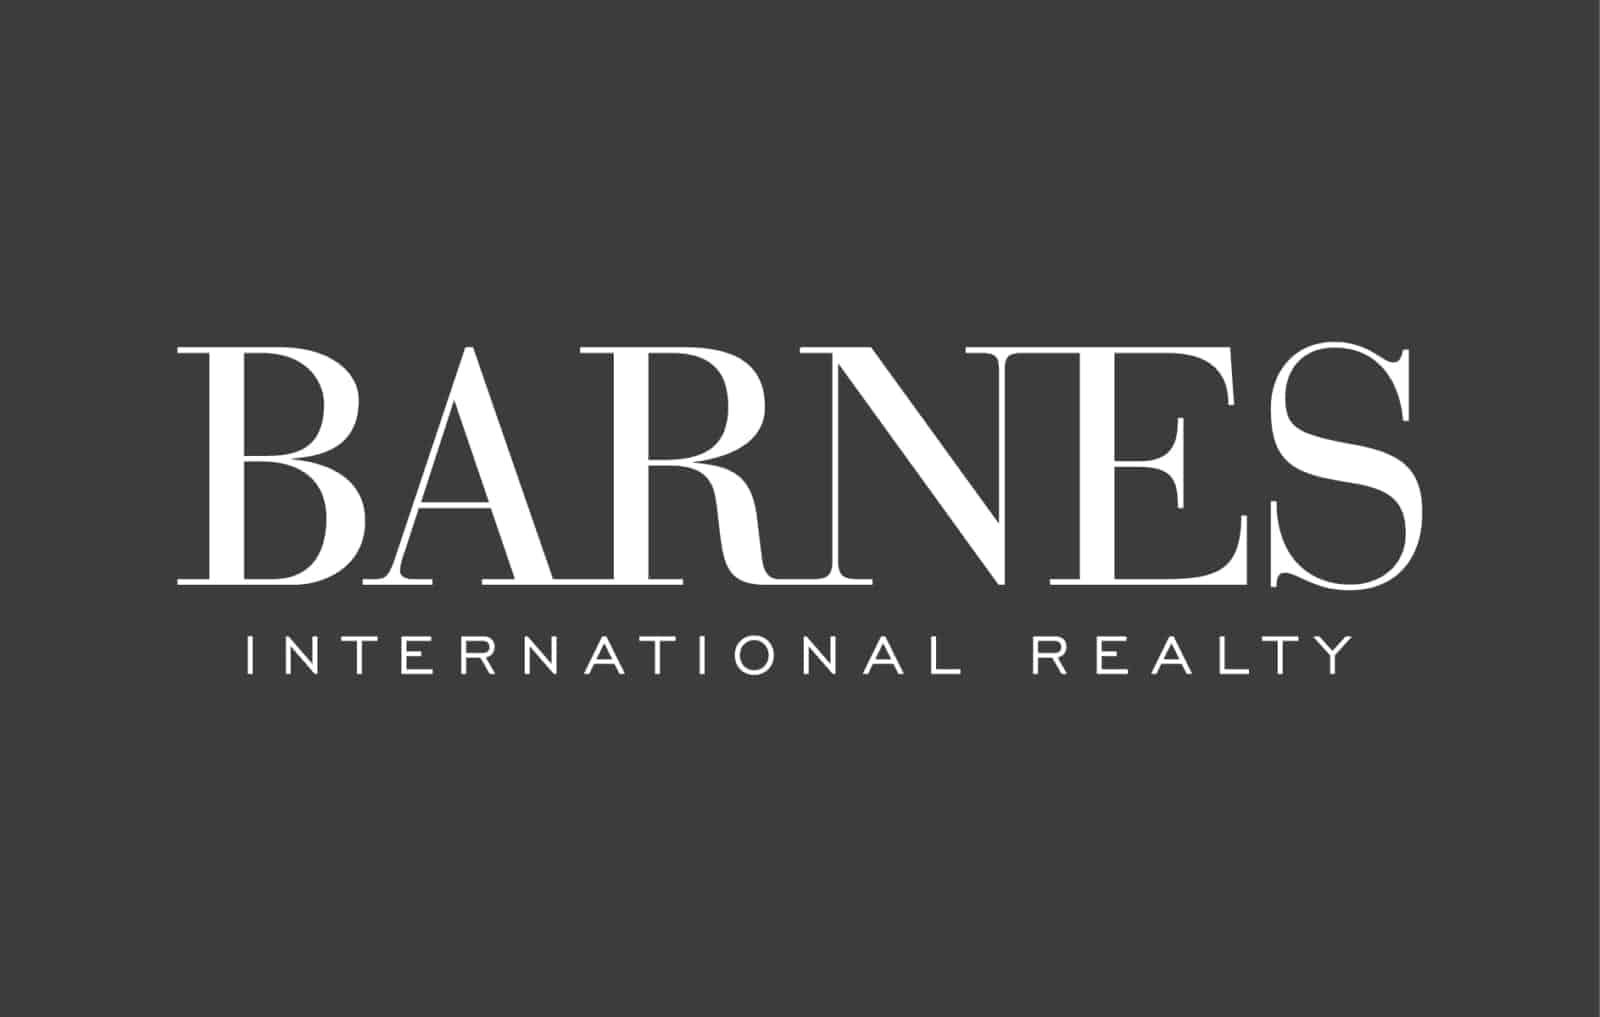 barnes-press-conference-fouquets-barriere-january-29-2019